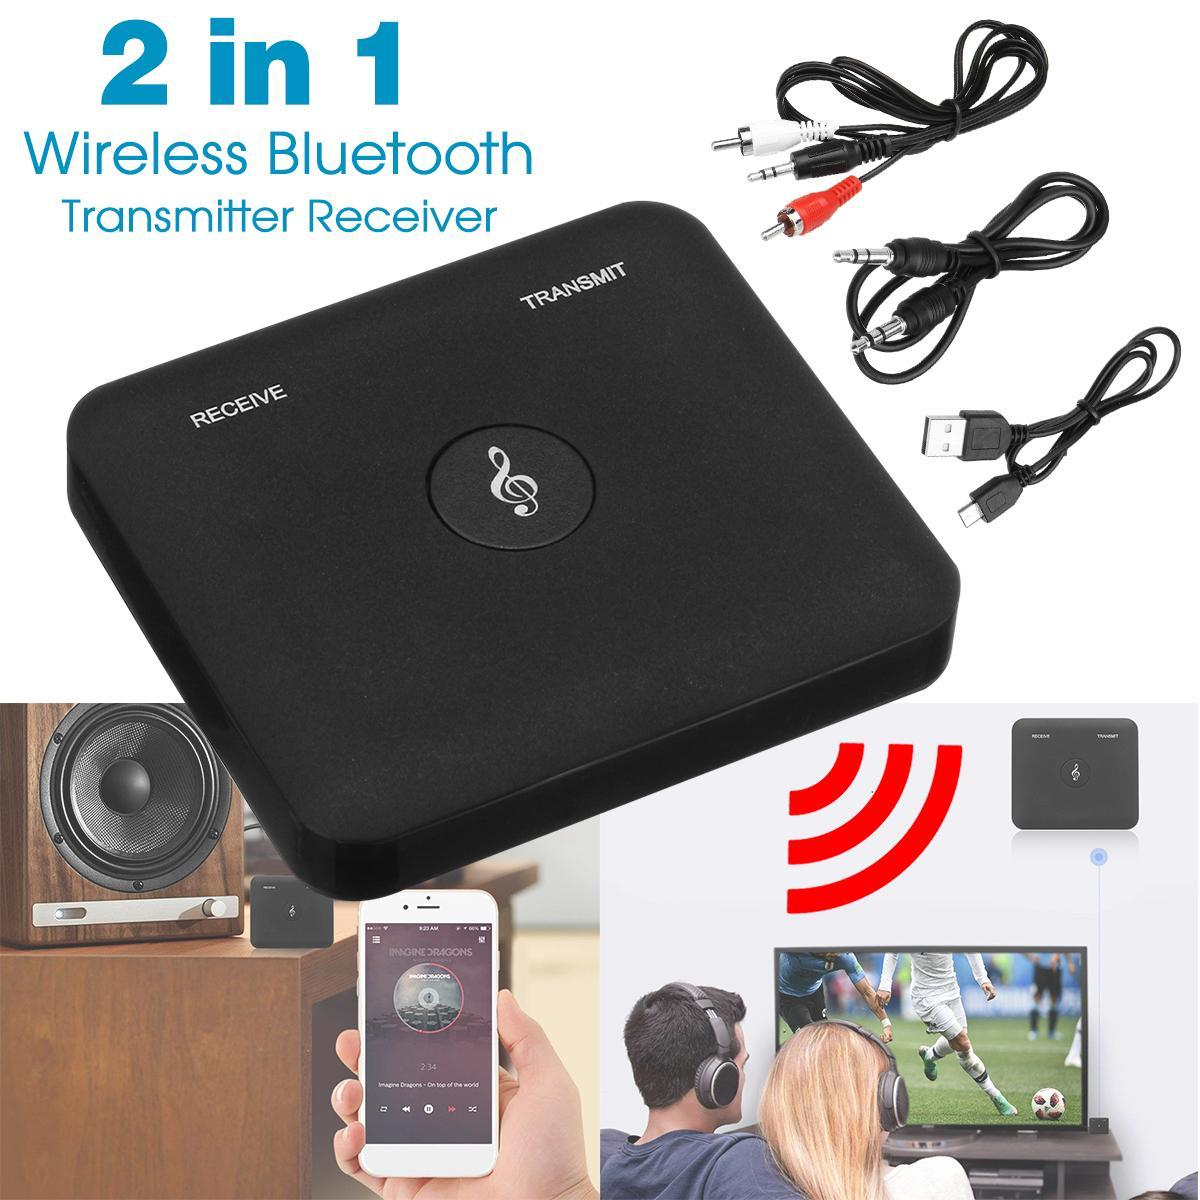 2 in 1 Wireless Bluetooth Transmitter Receiver A2DP Home TV Stereo 3 5mm  Port Wireless Audio Adapter For Phone PC